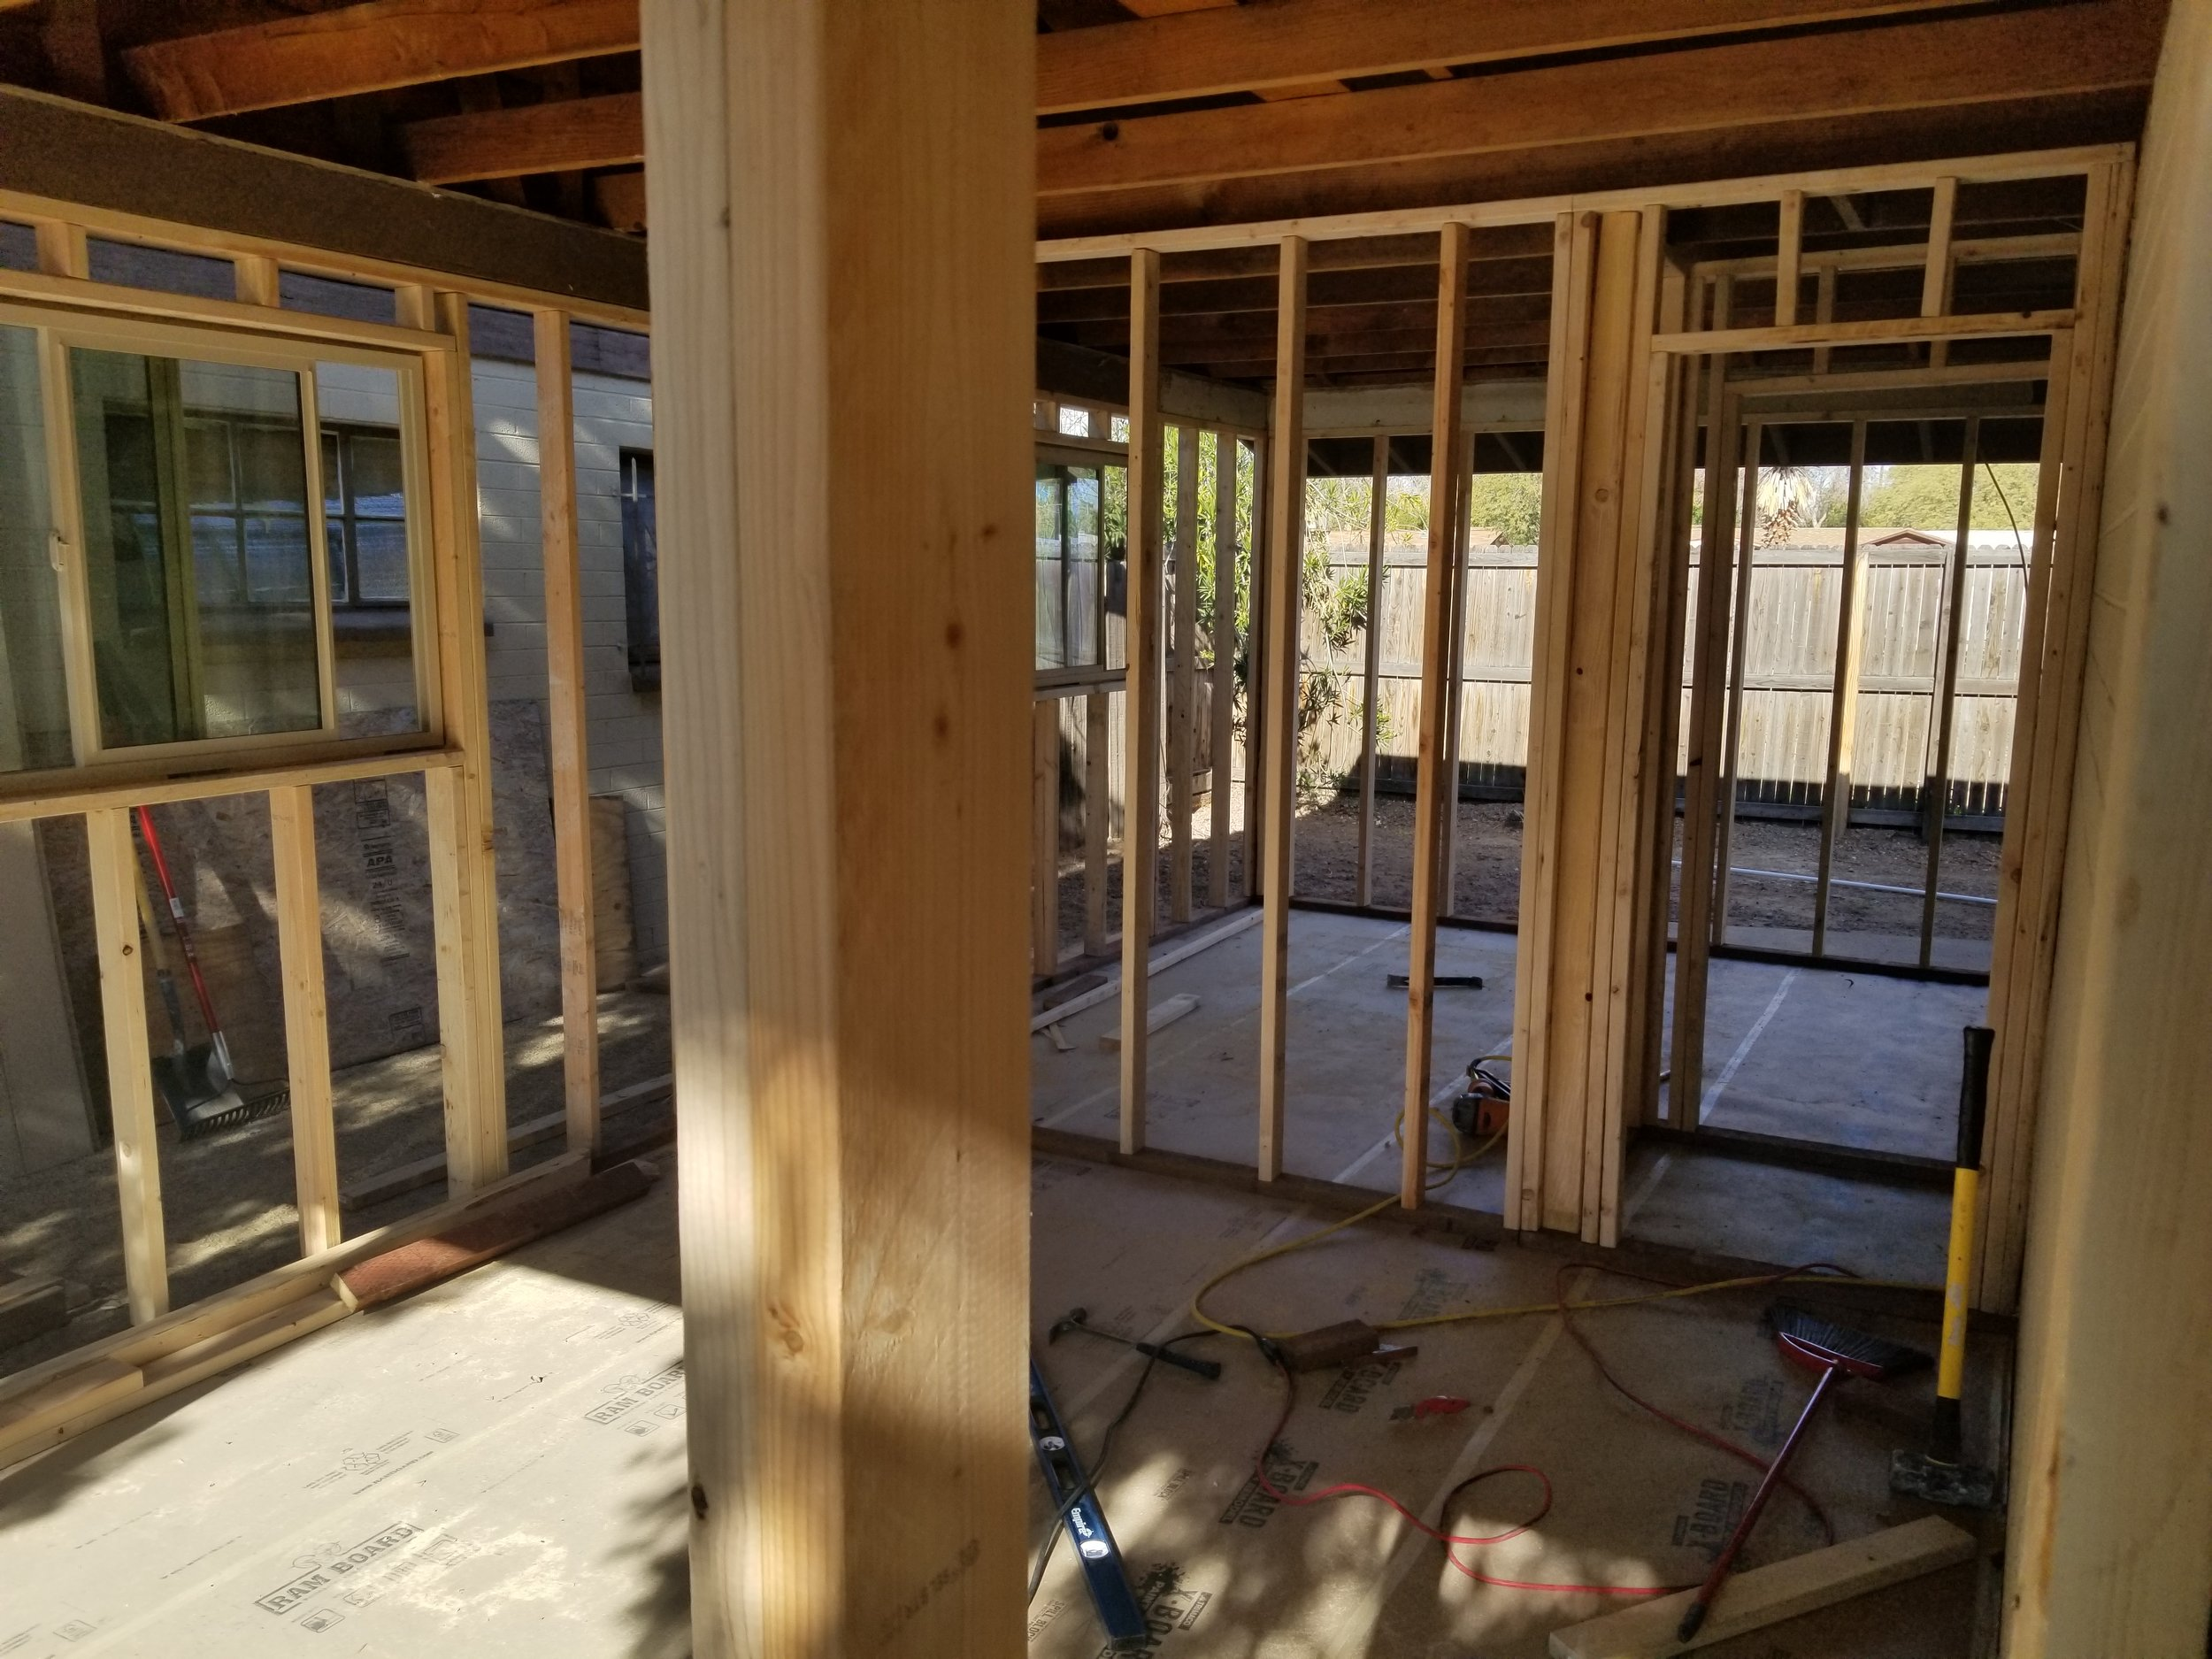 Framing continues for bedrooms